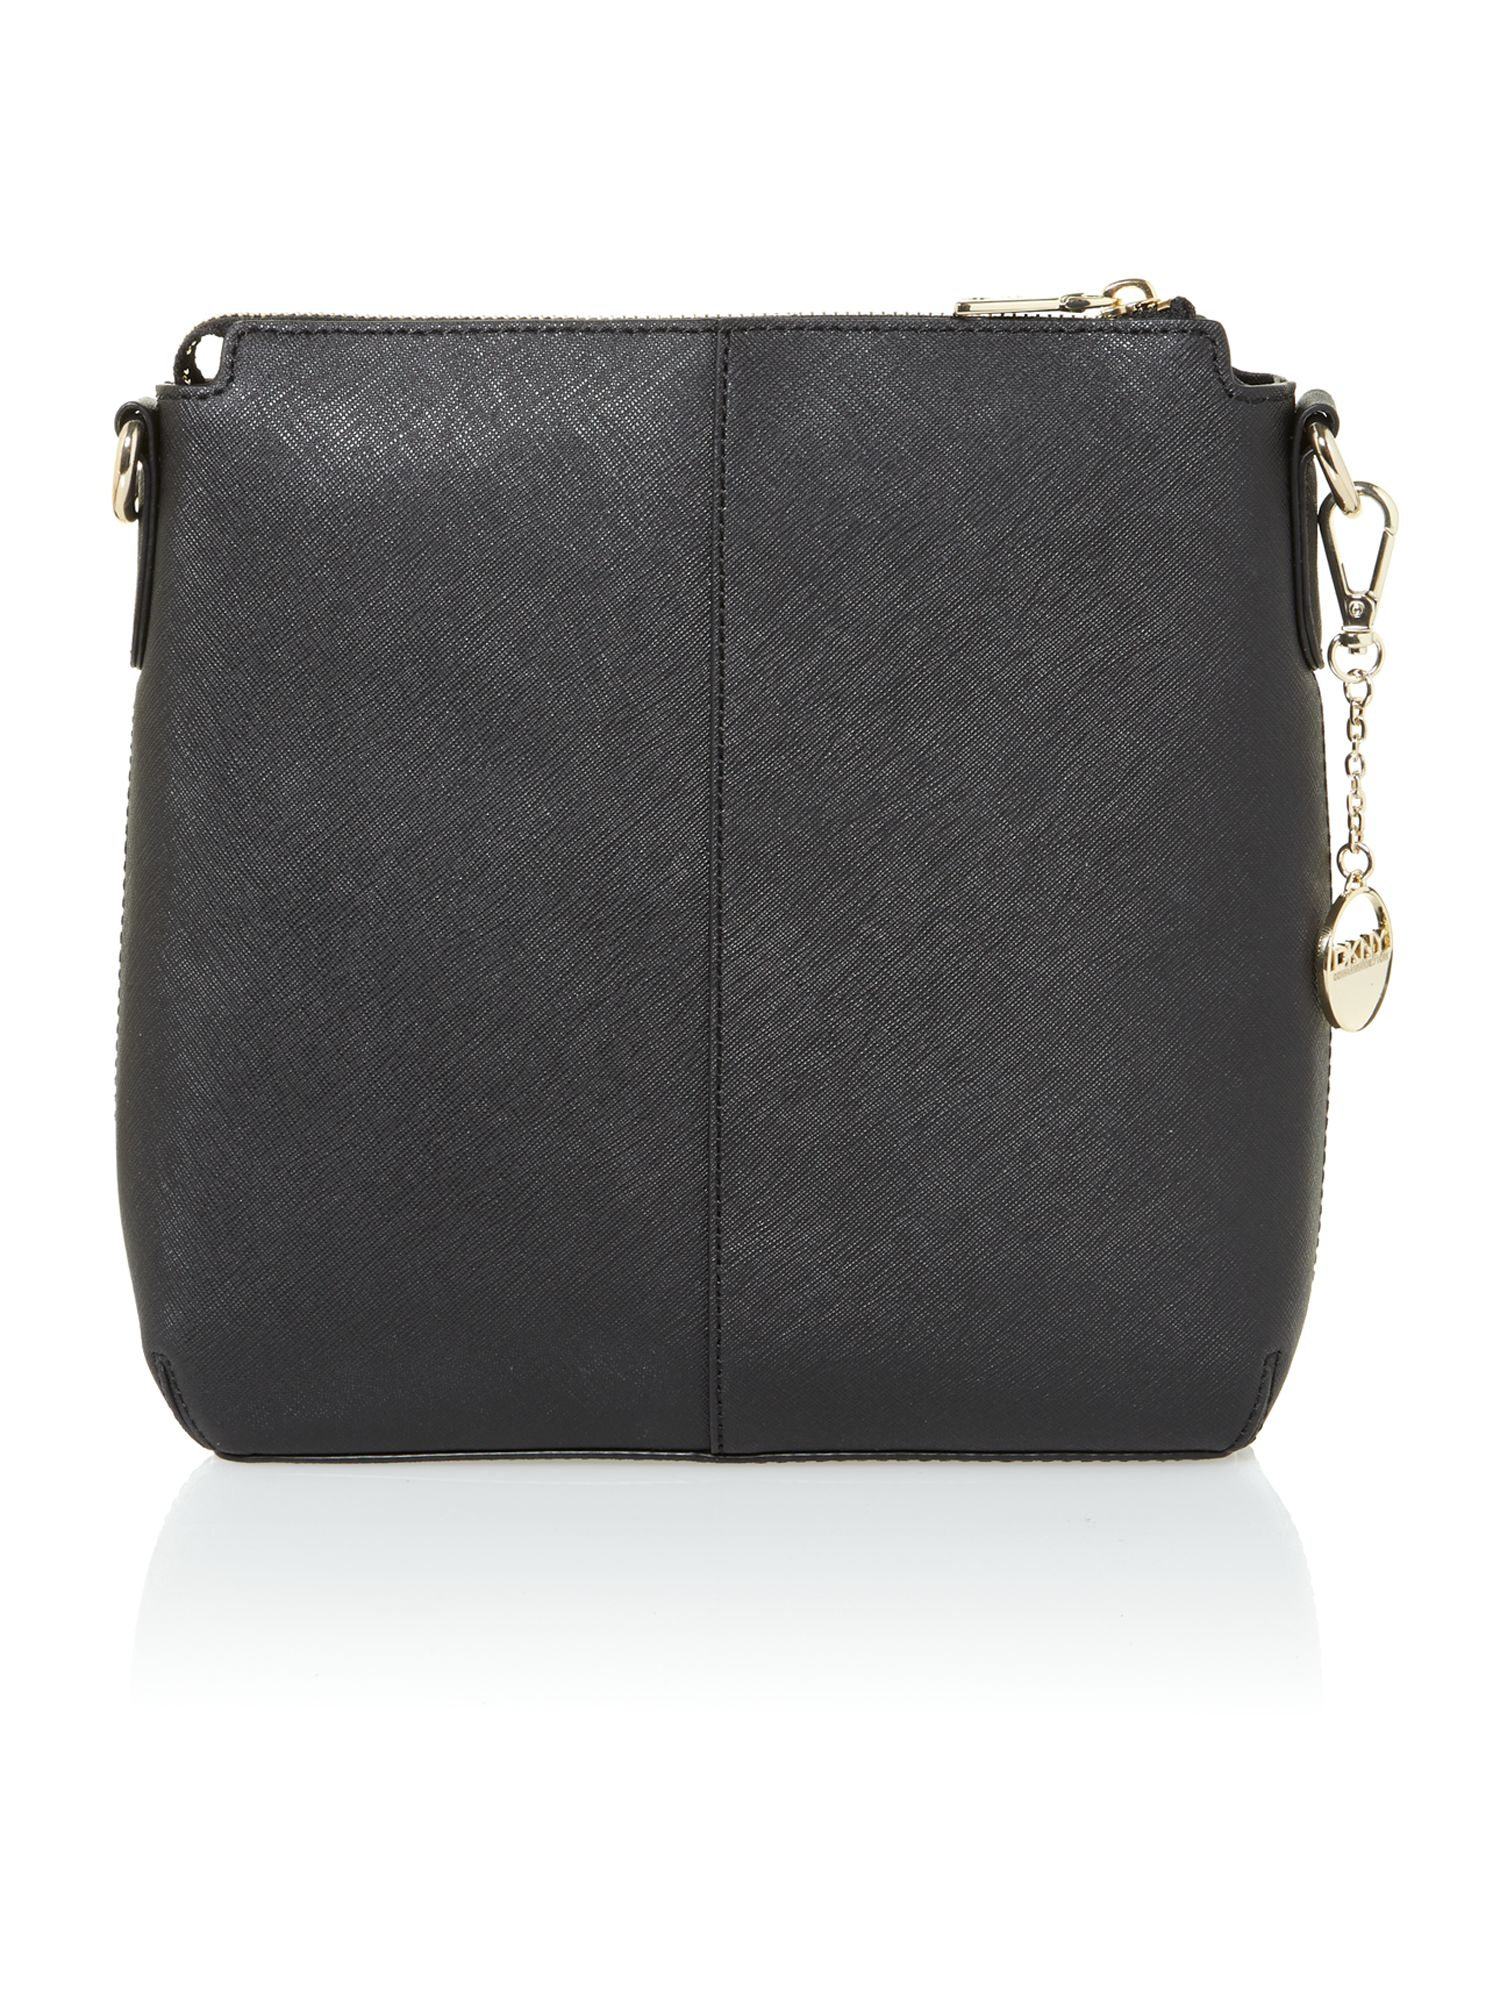 Saff items black cross body bag